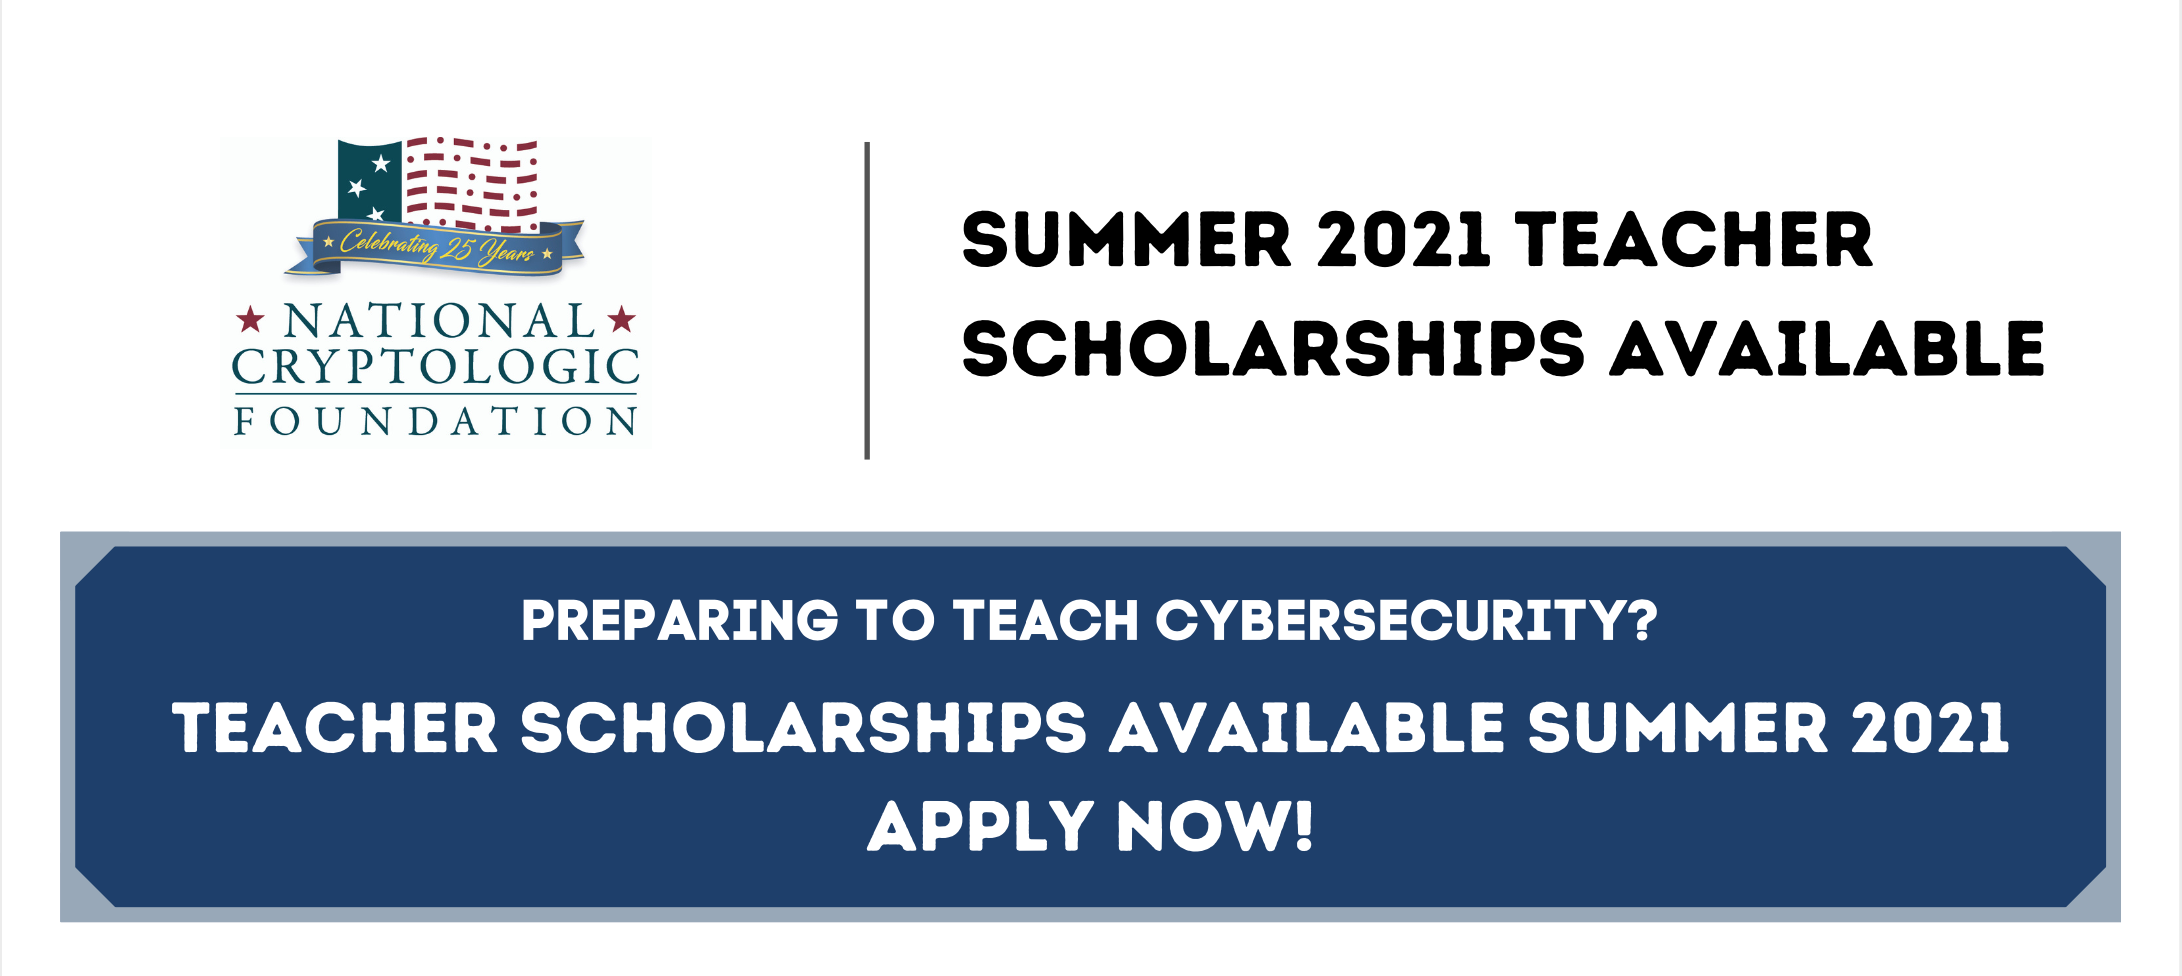 Cyber Educator Scholarships for Summer 2021 - Apply by April 30th